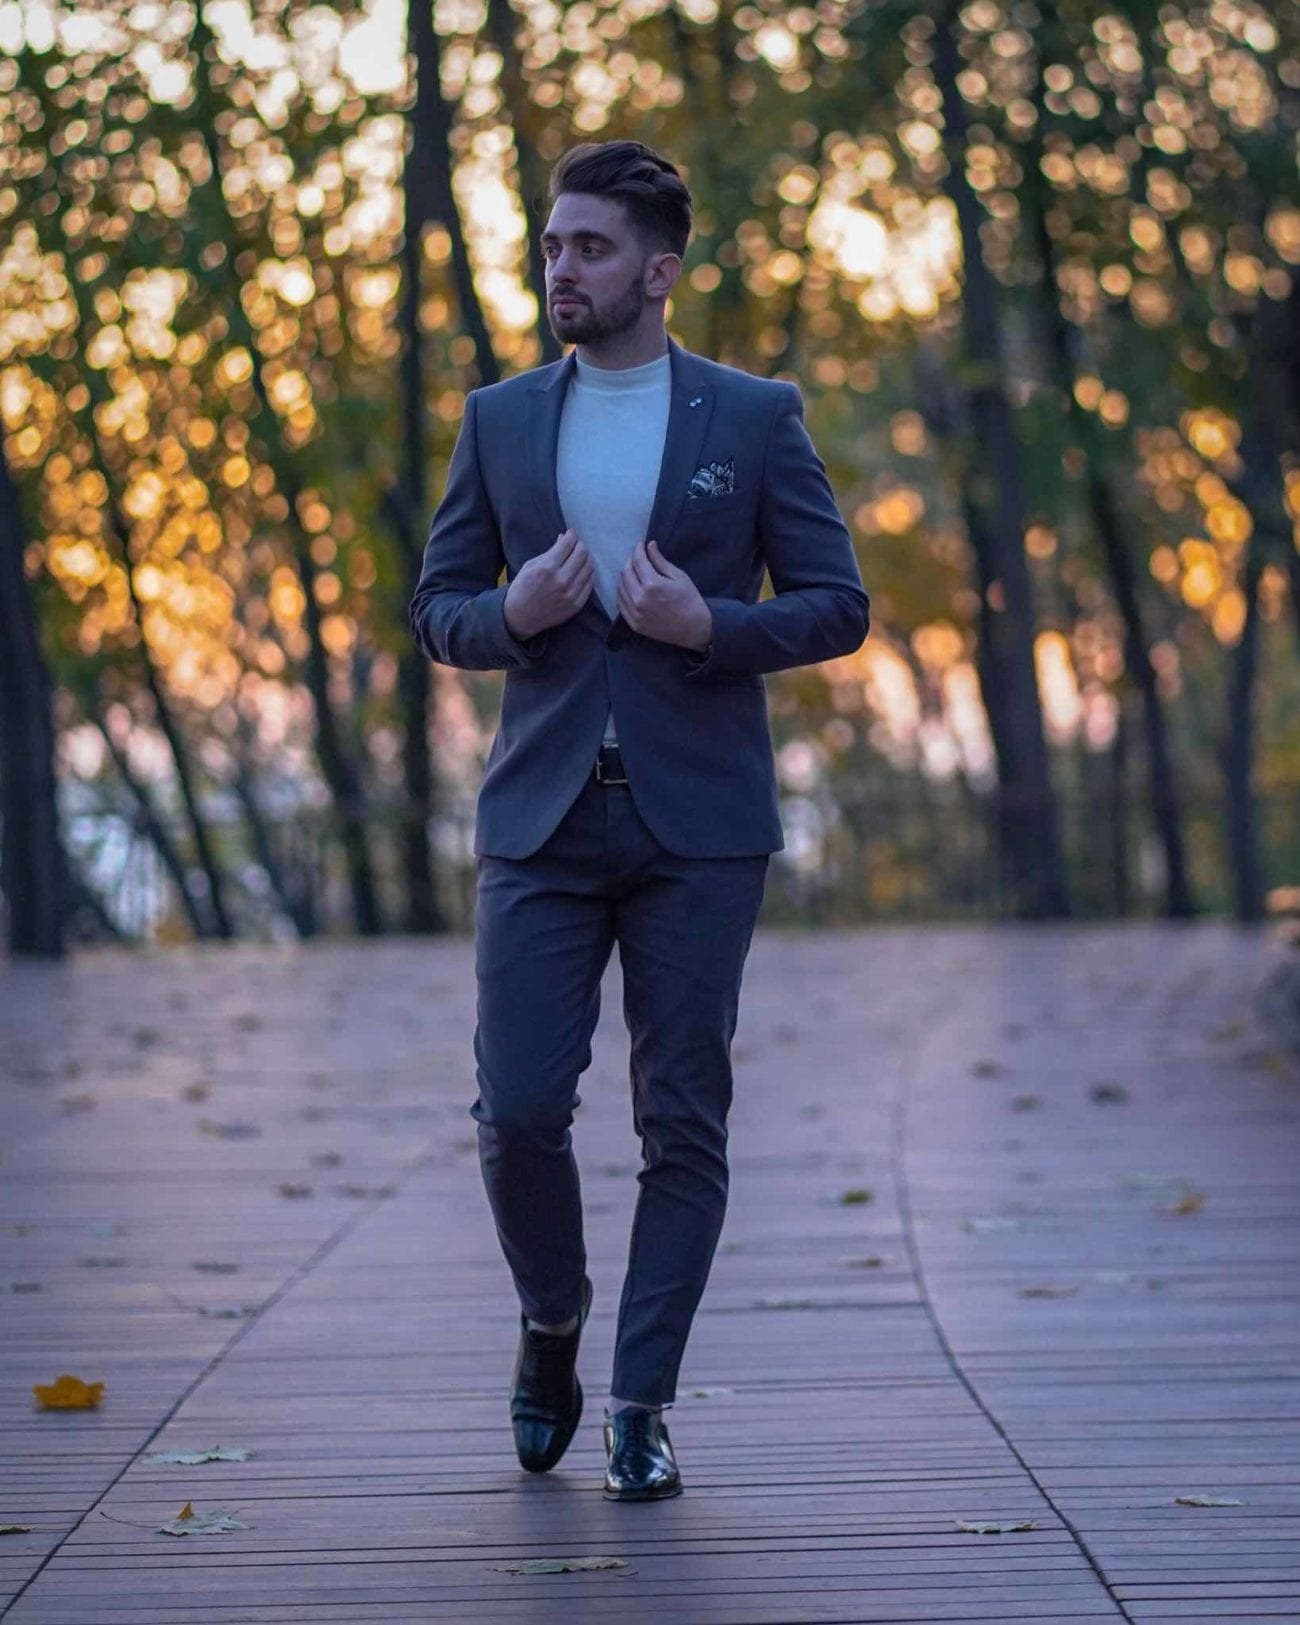 Elisha Elbaz is continuing to make waves in the business world, with his company, DigitalFuture, LTD. Here's our interview with the influencer.